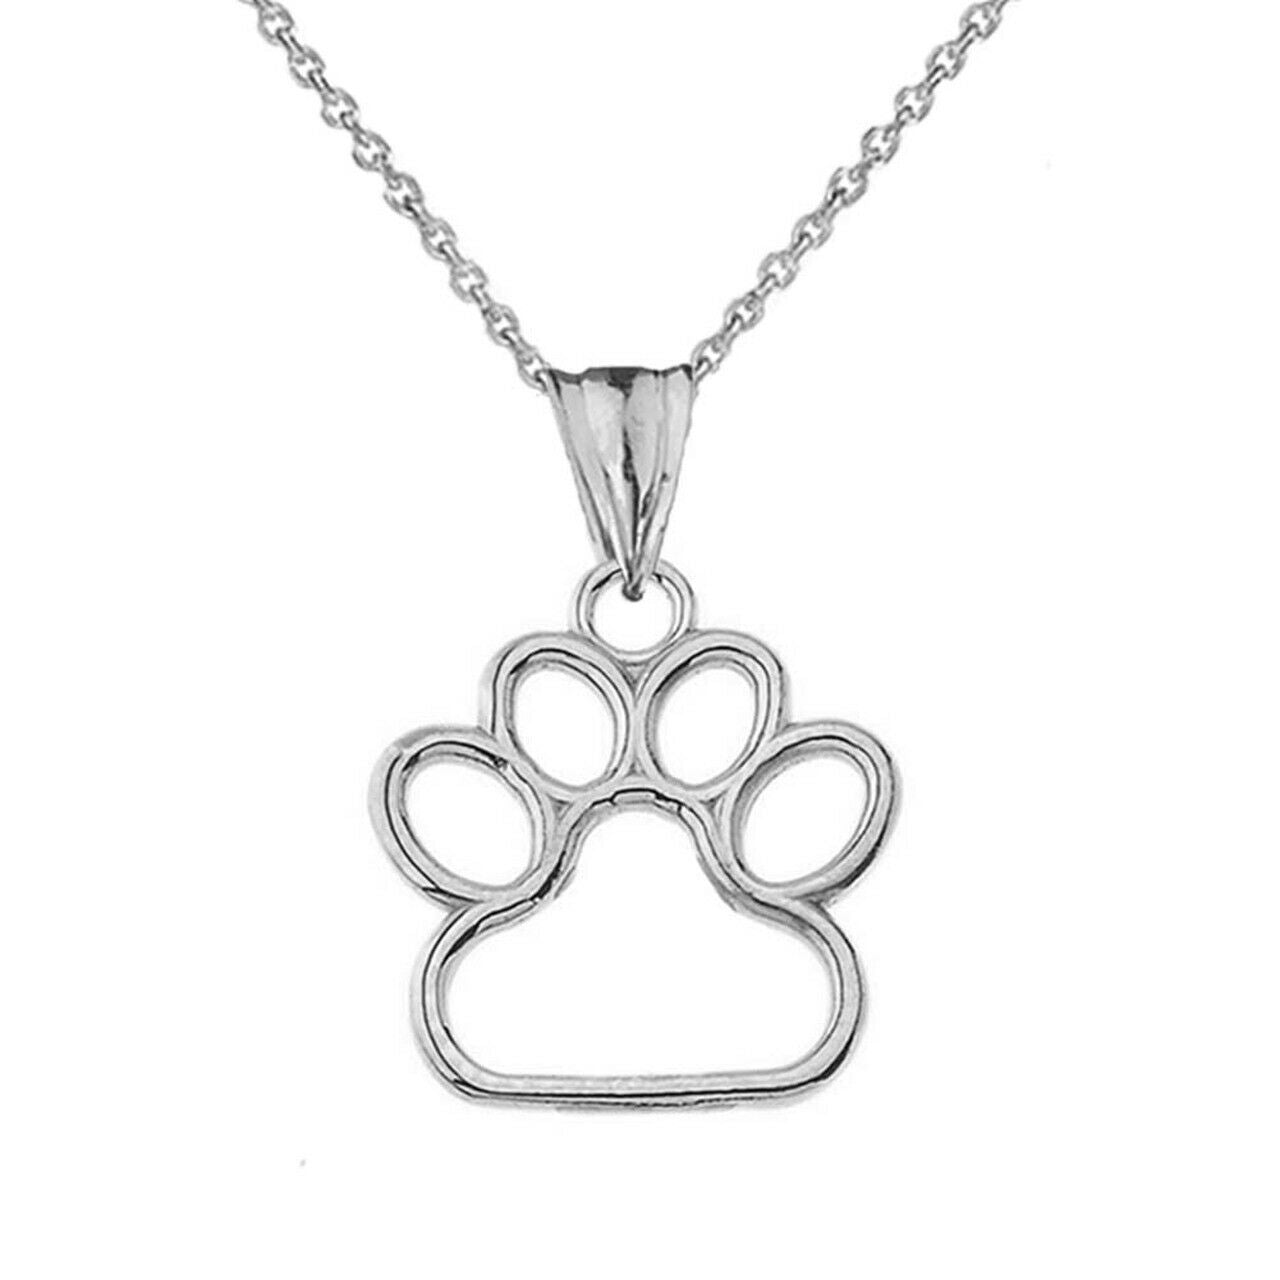 Dainty Dog Paw Print Pendant Necklace In 925 genuine Sterling Silver Made In USA